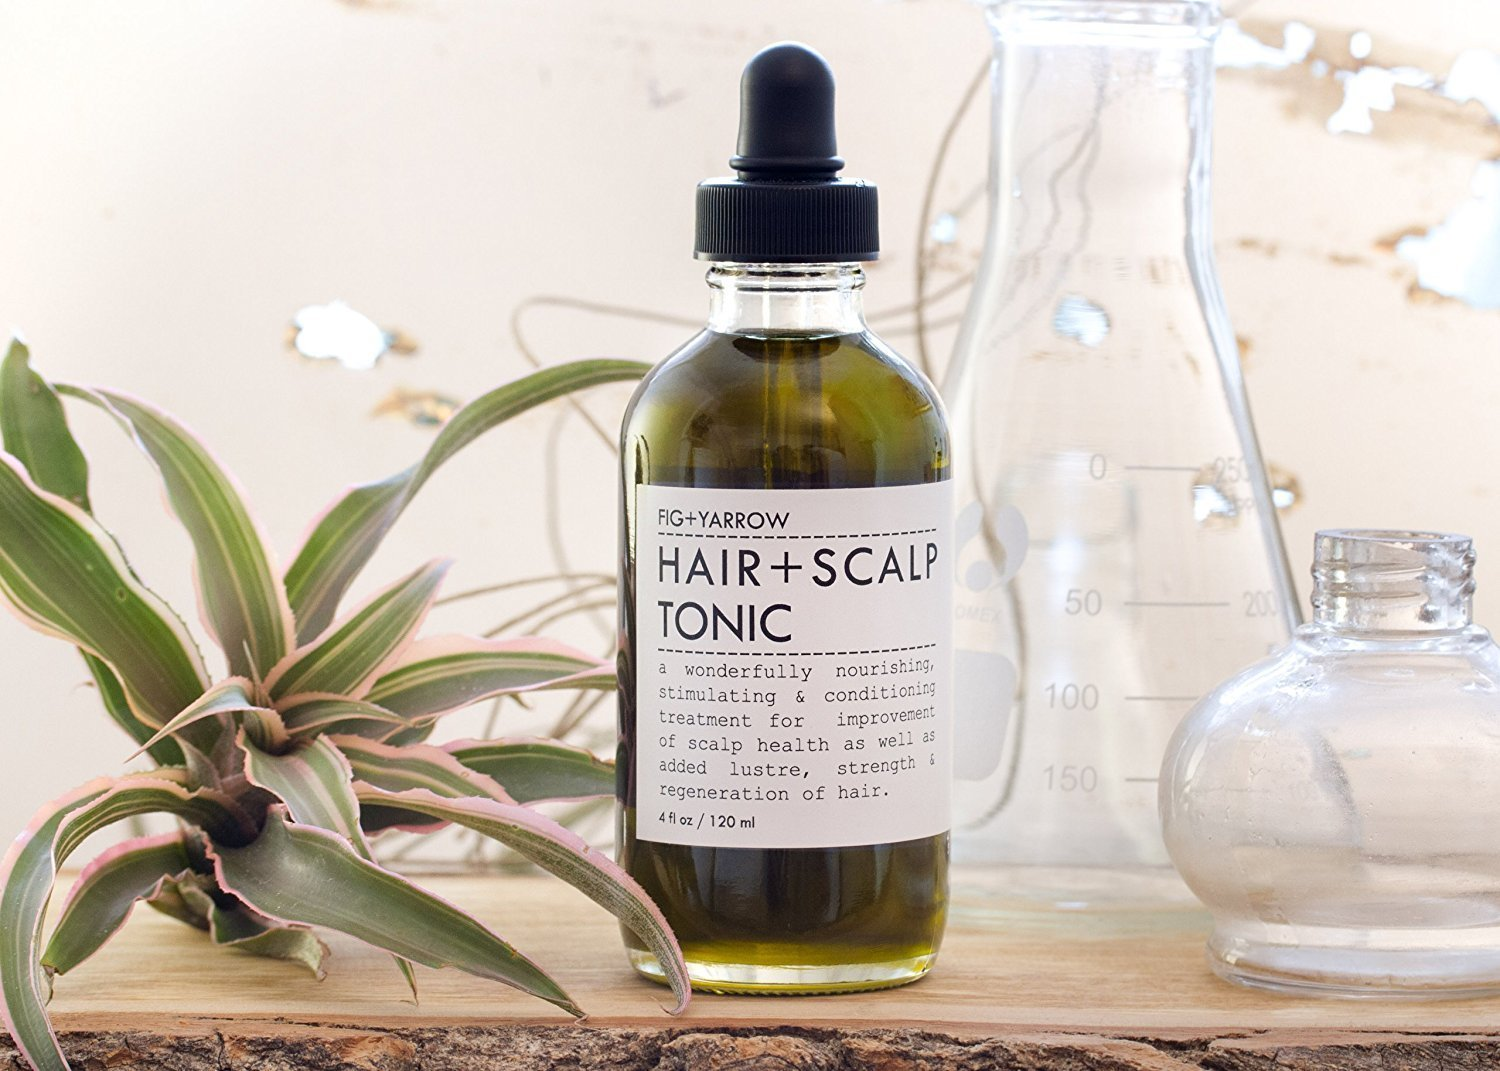 Fig+Yarrow Hair+Scalp Tonic